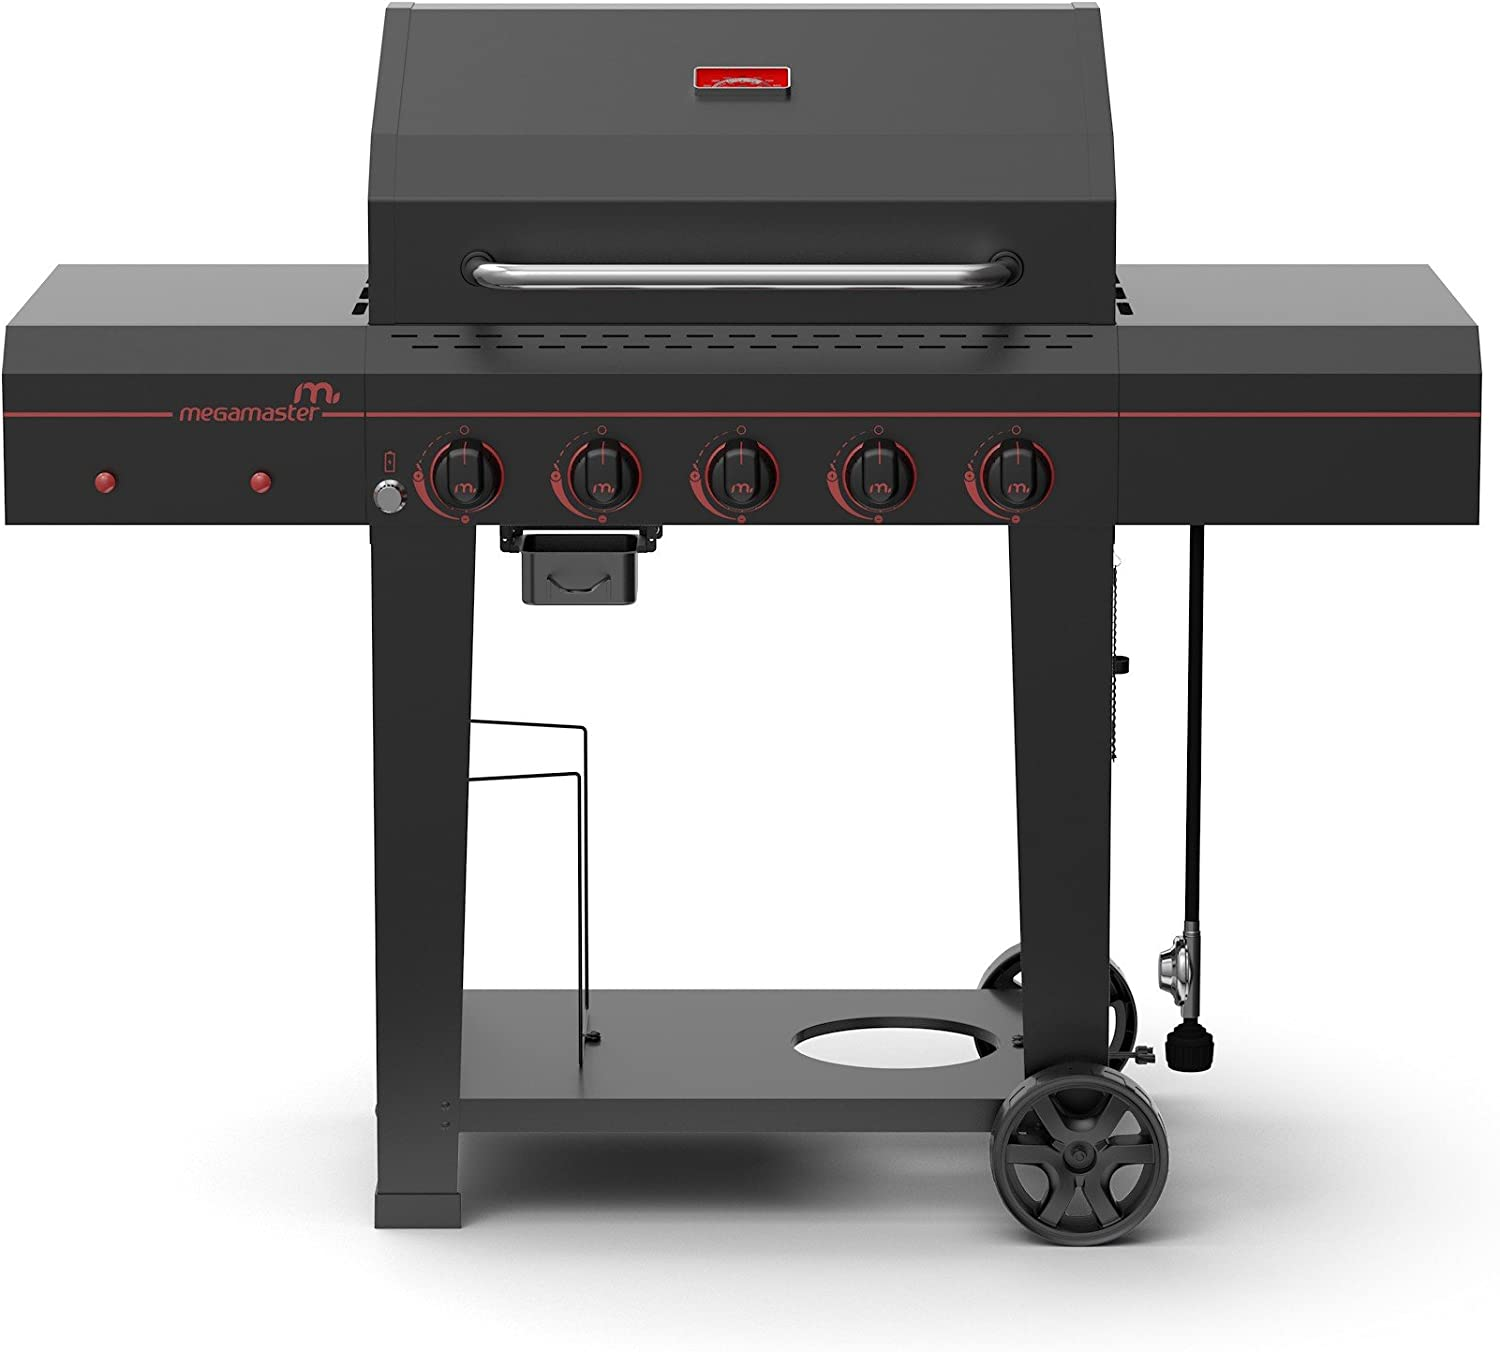 megamaster-720-0982-propane-gas-grill